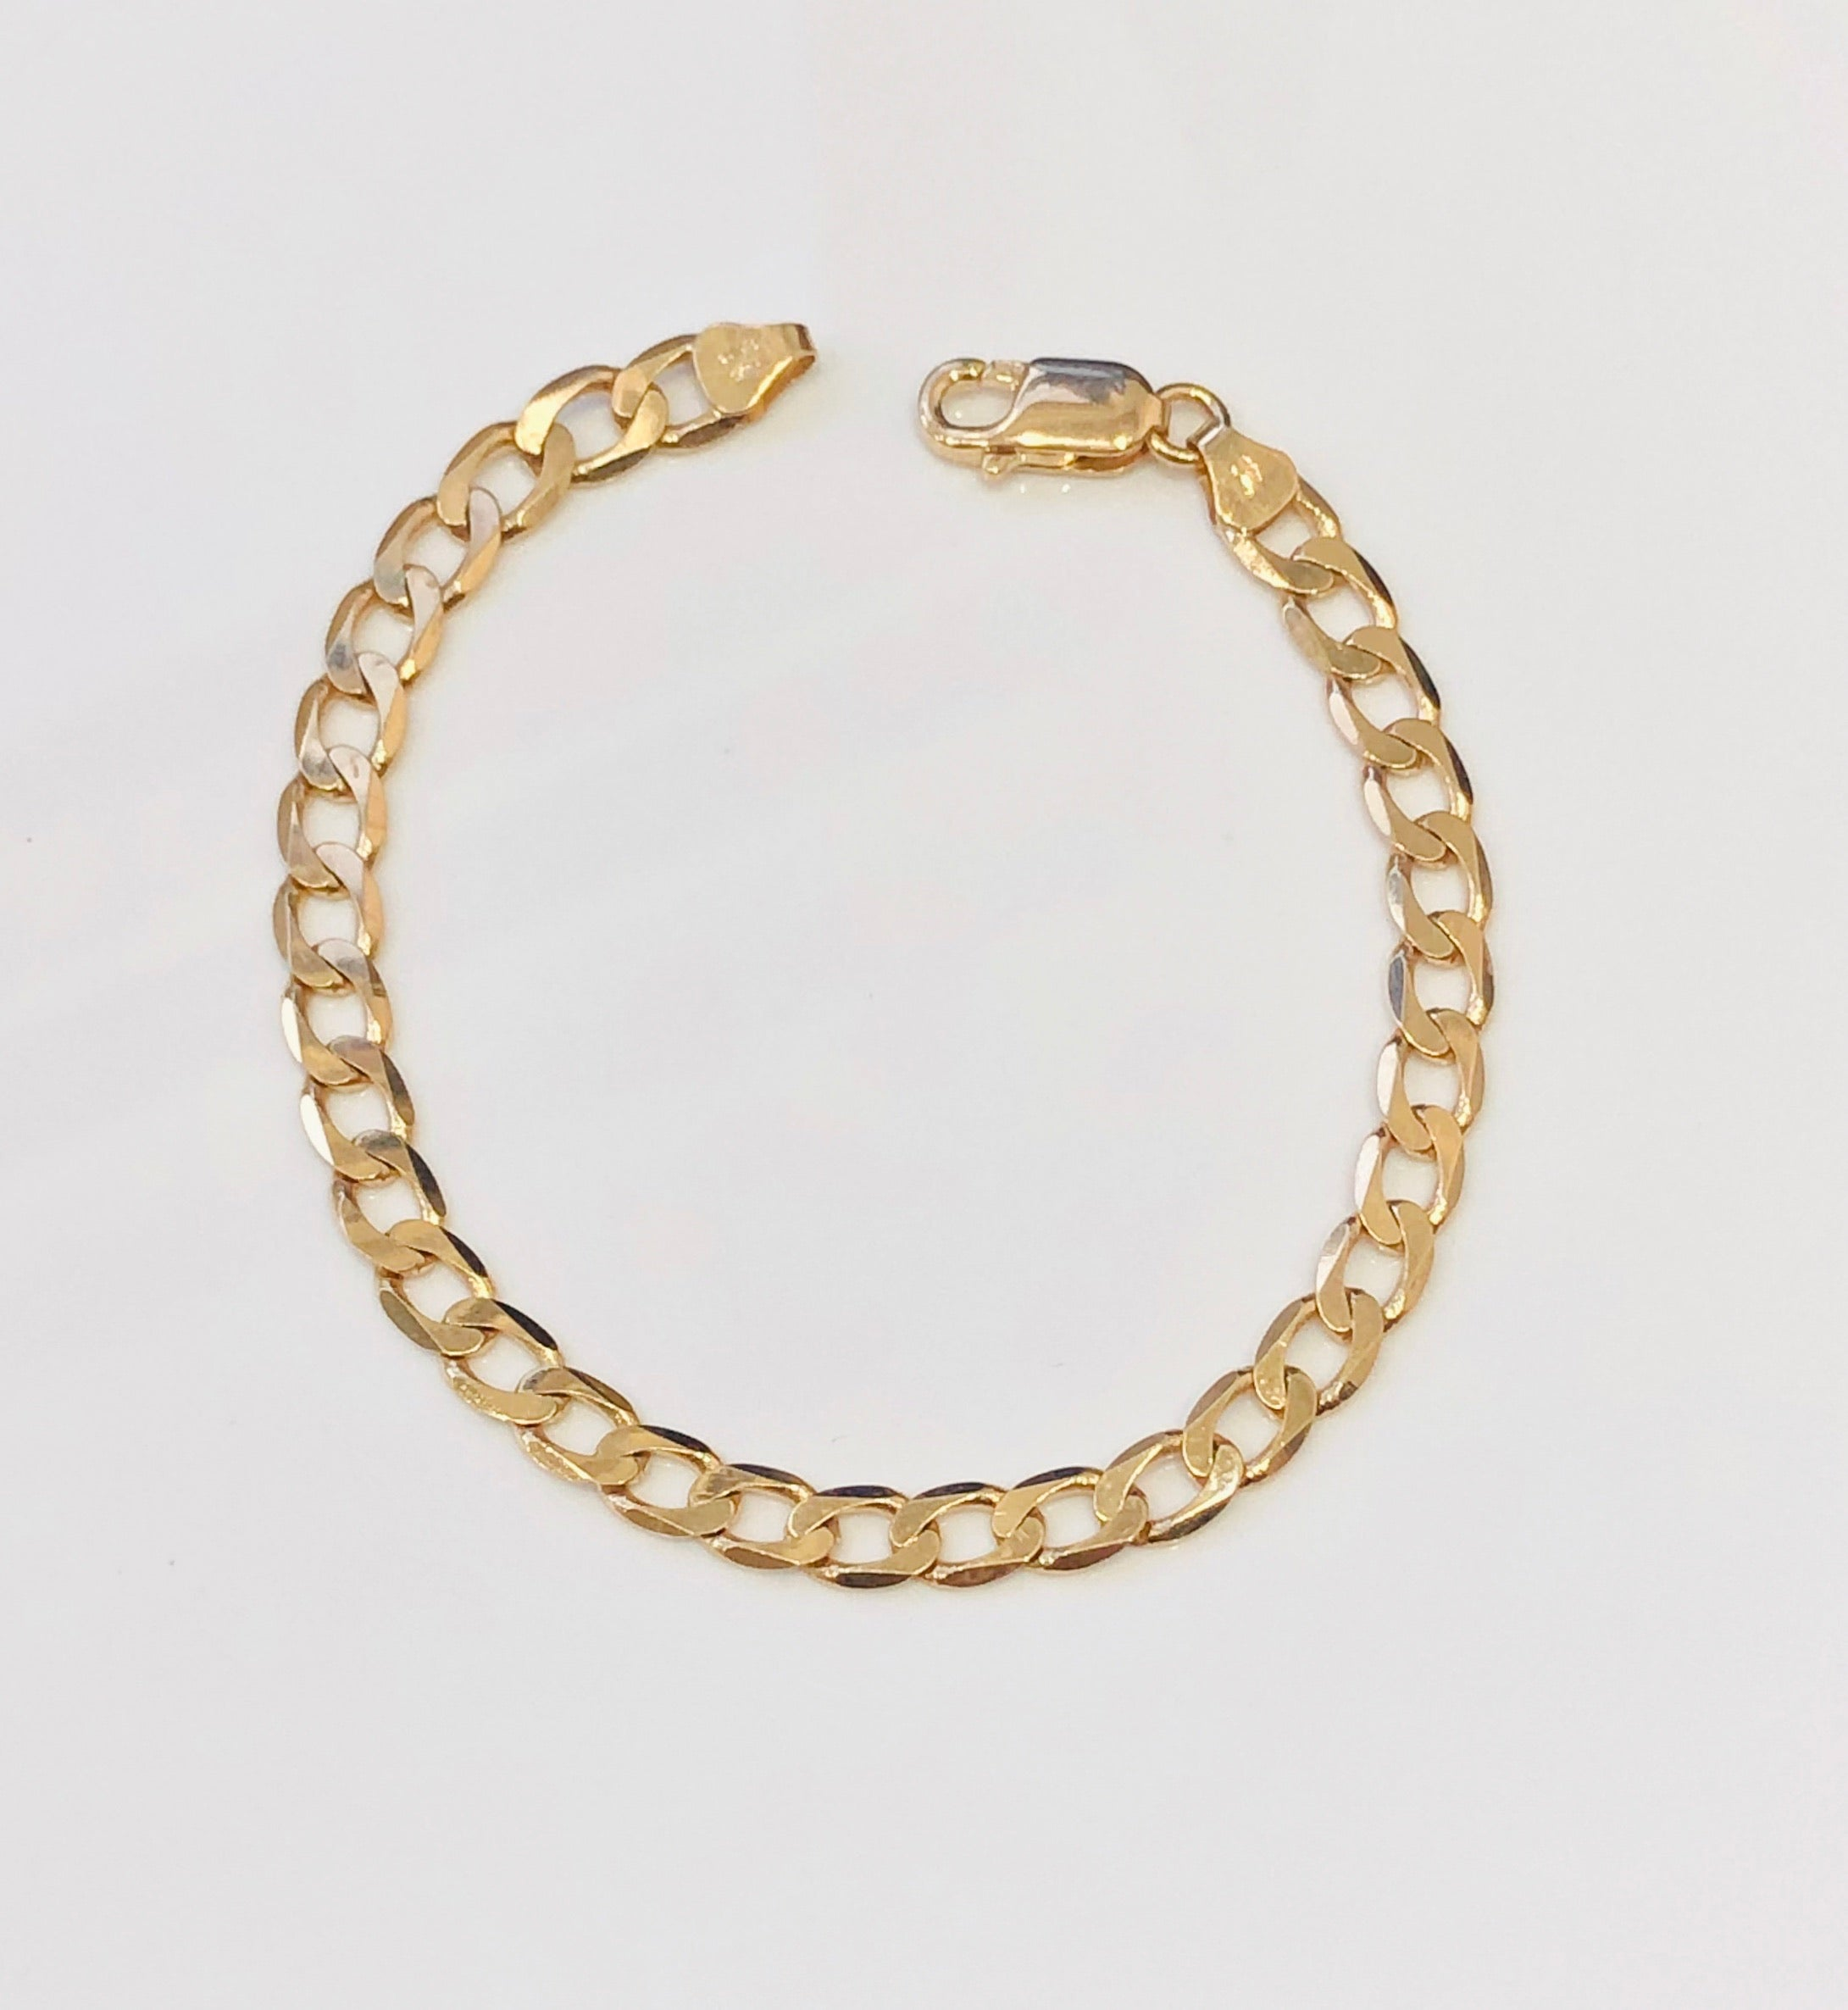 9ct Yellow Gold Open Curb 6 Sides Link Bracelet 19cm - 150 Gauge